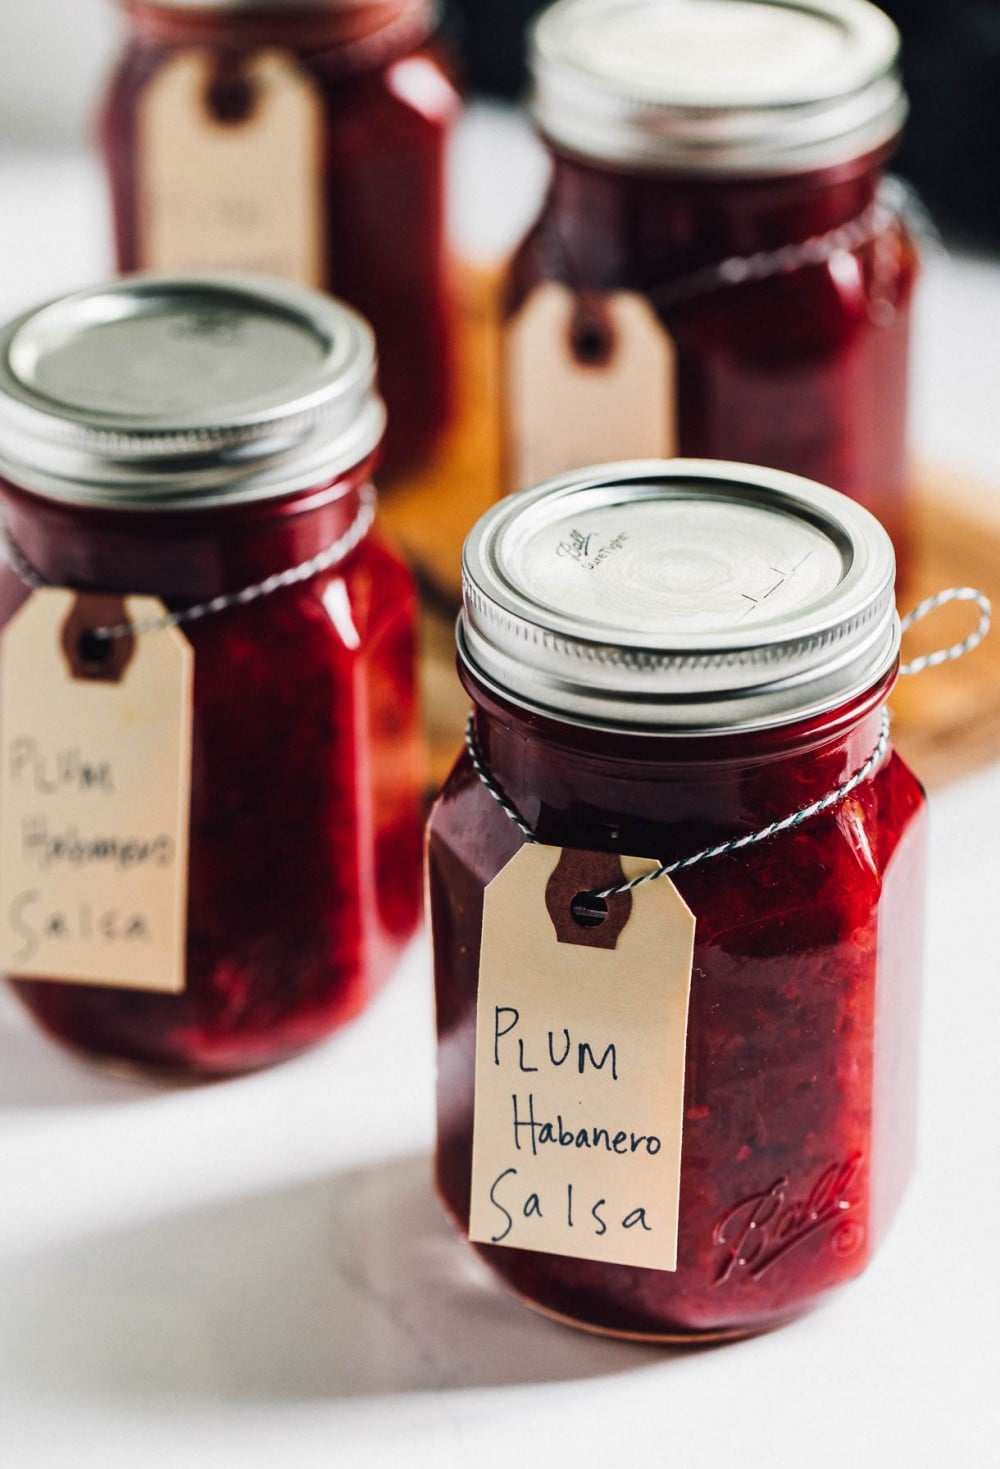 plum habanero salsa in glass ball jars, lined up